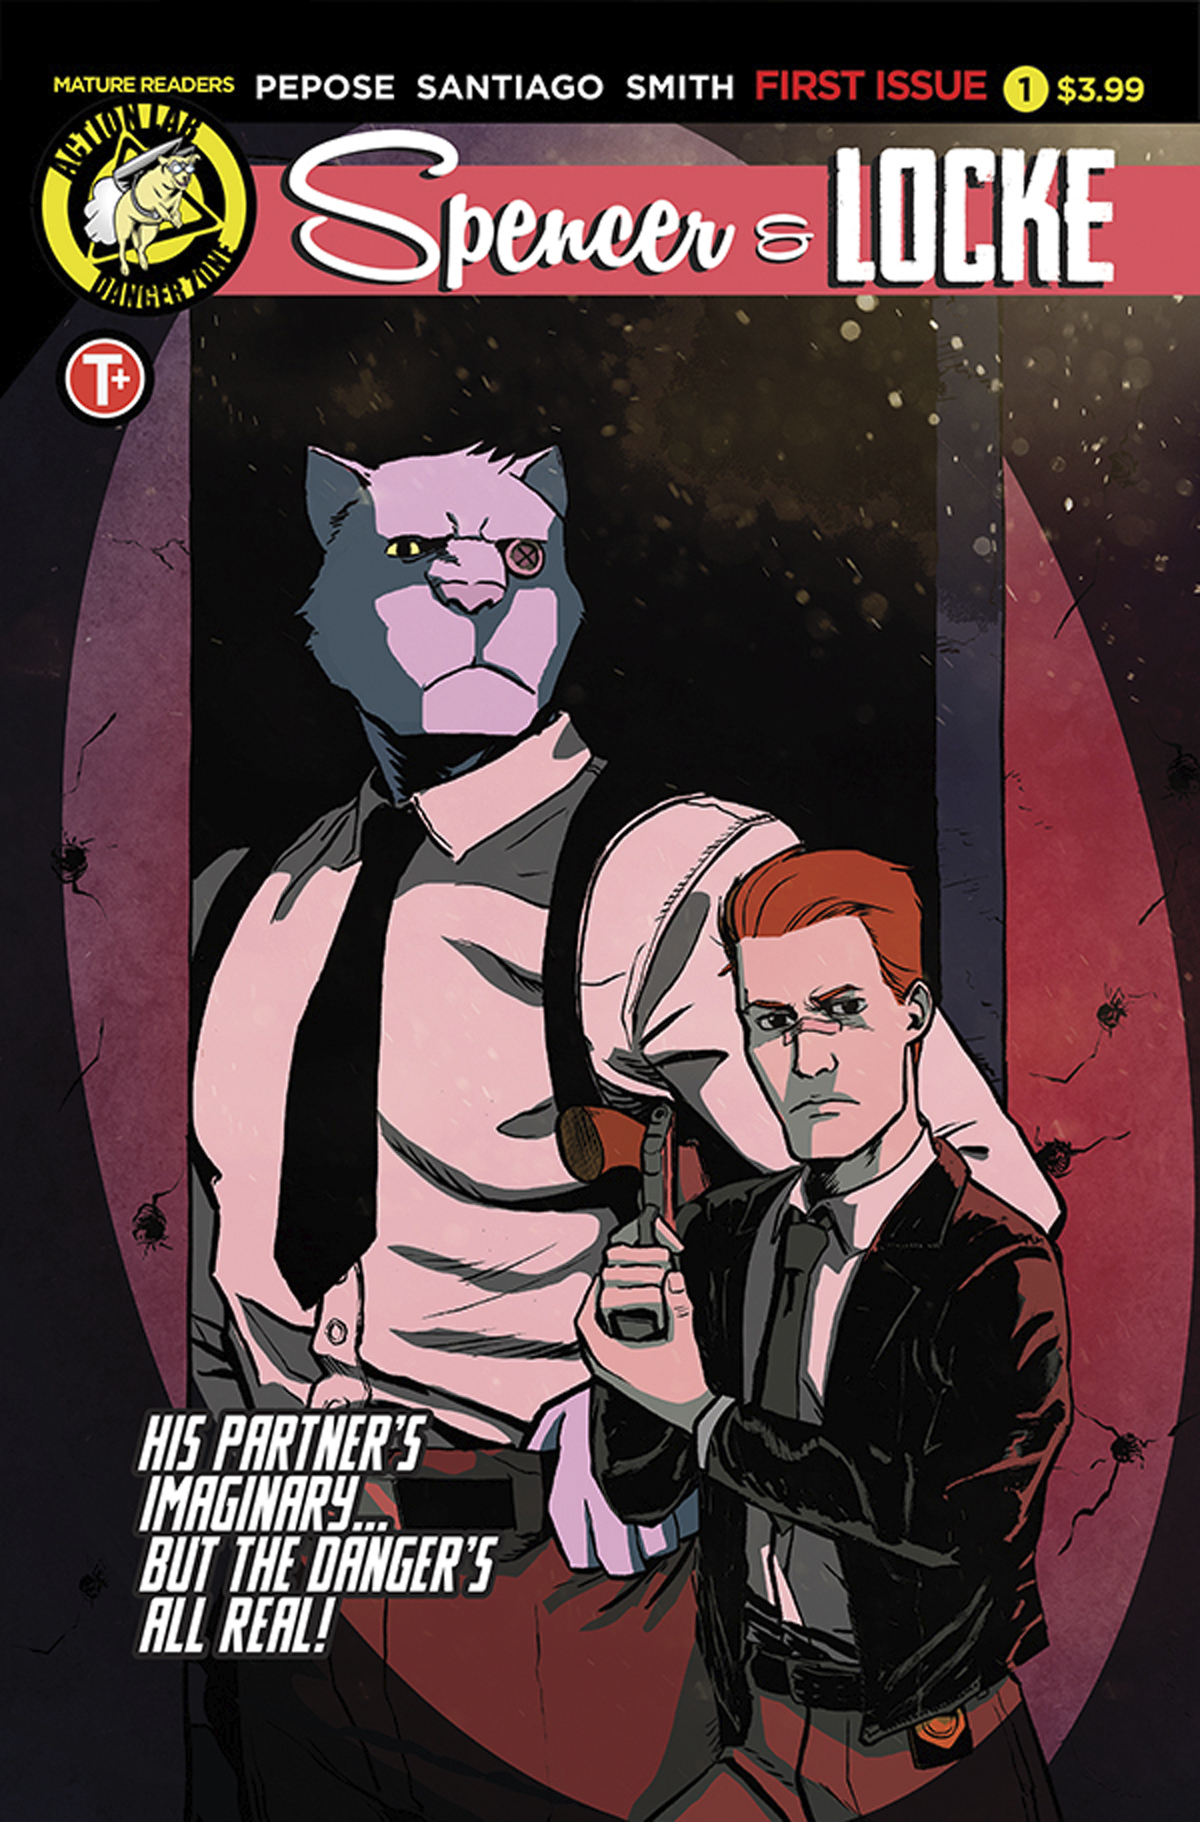 SPENCER AND LOCKE #1 (OF 4) CVR A SANTIAGO JR